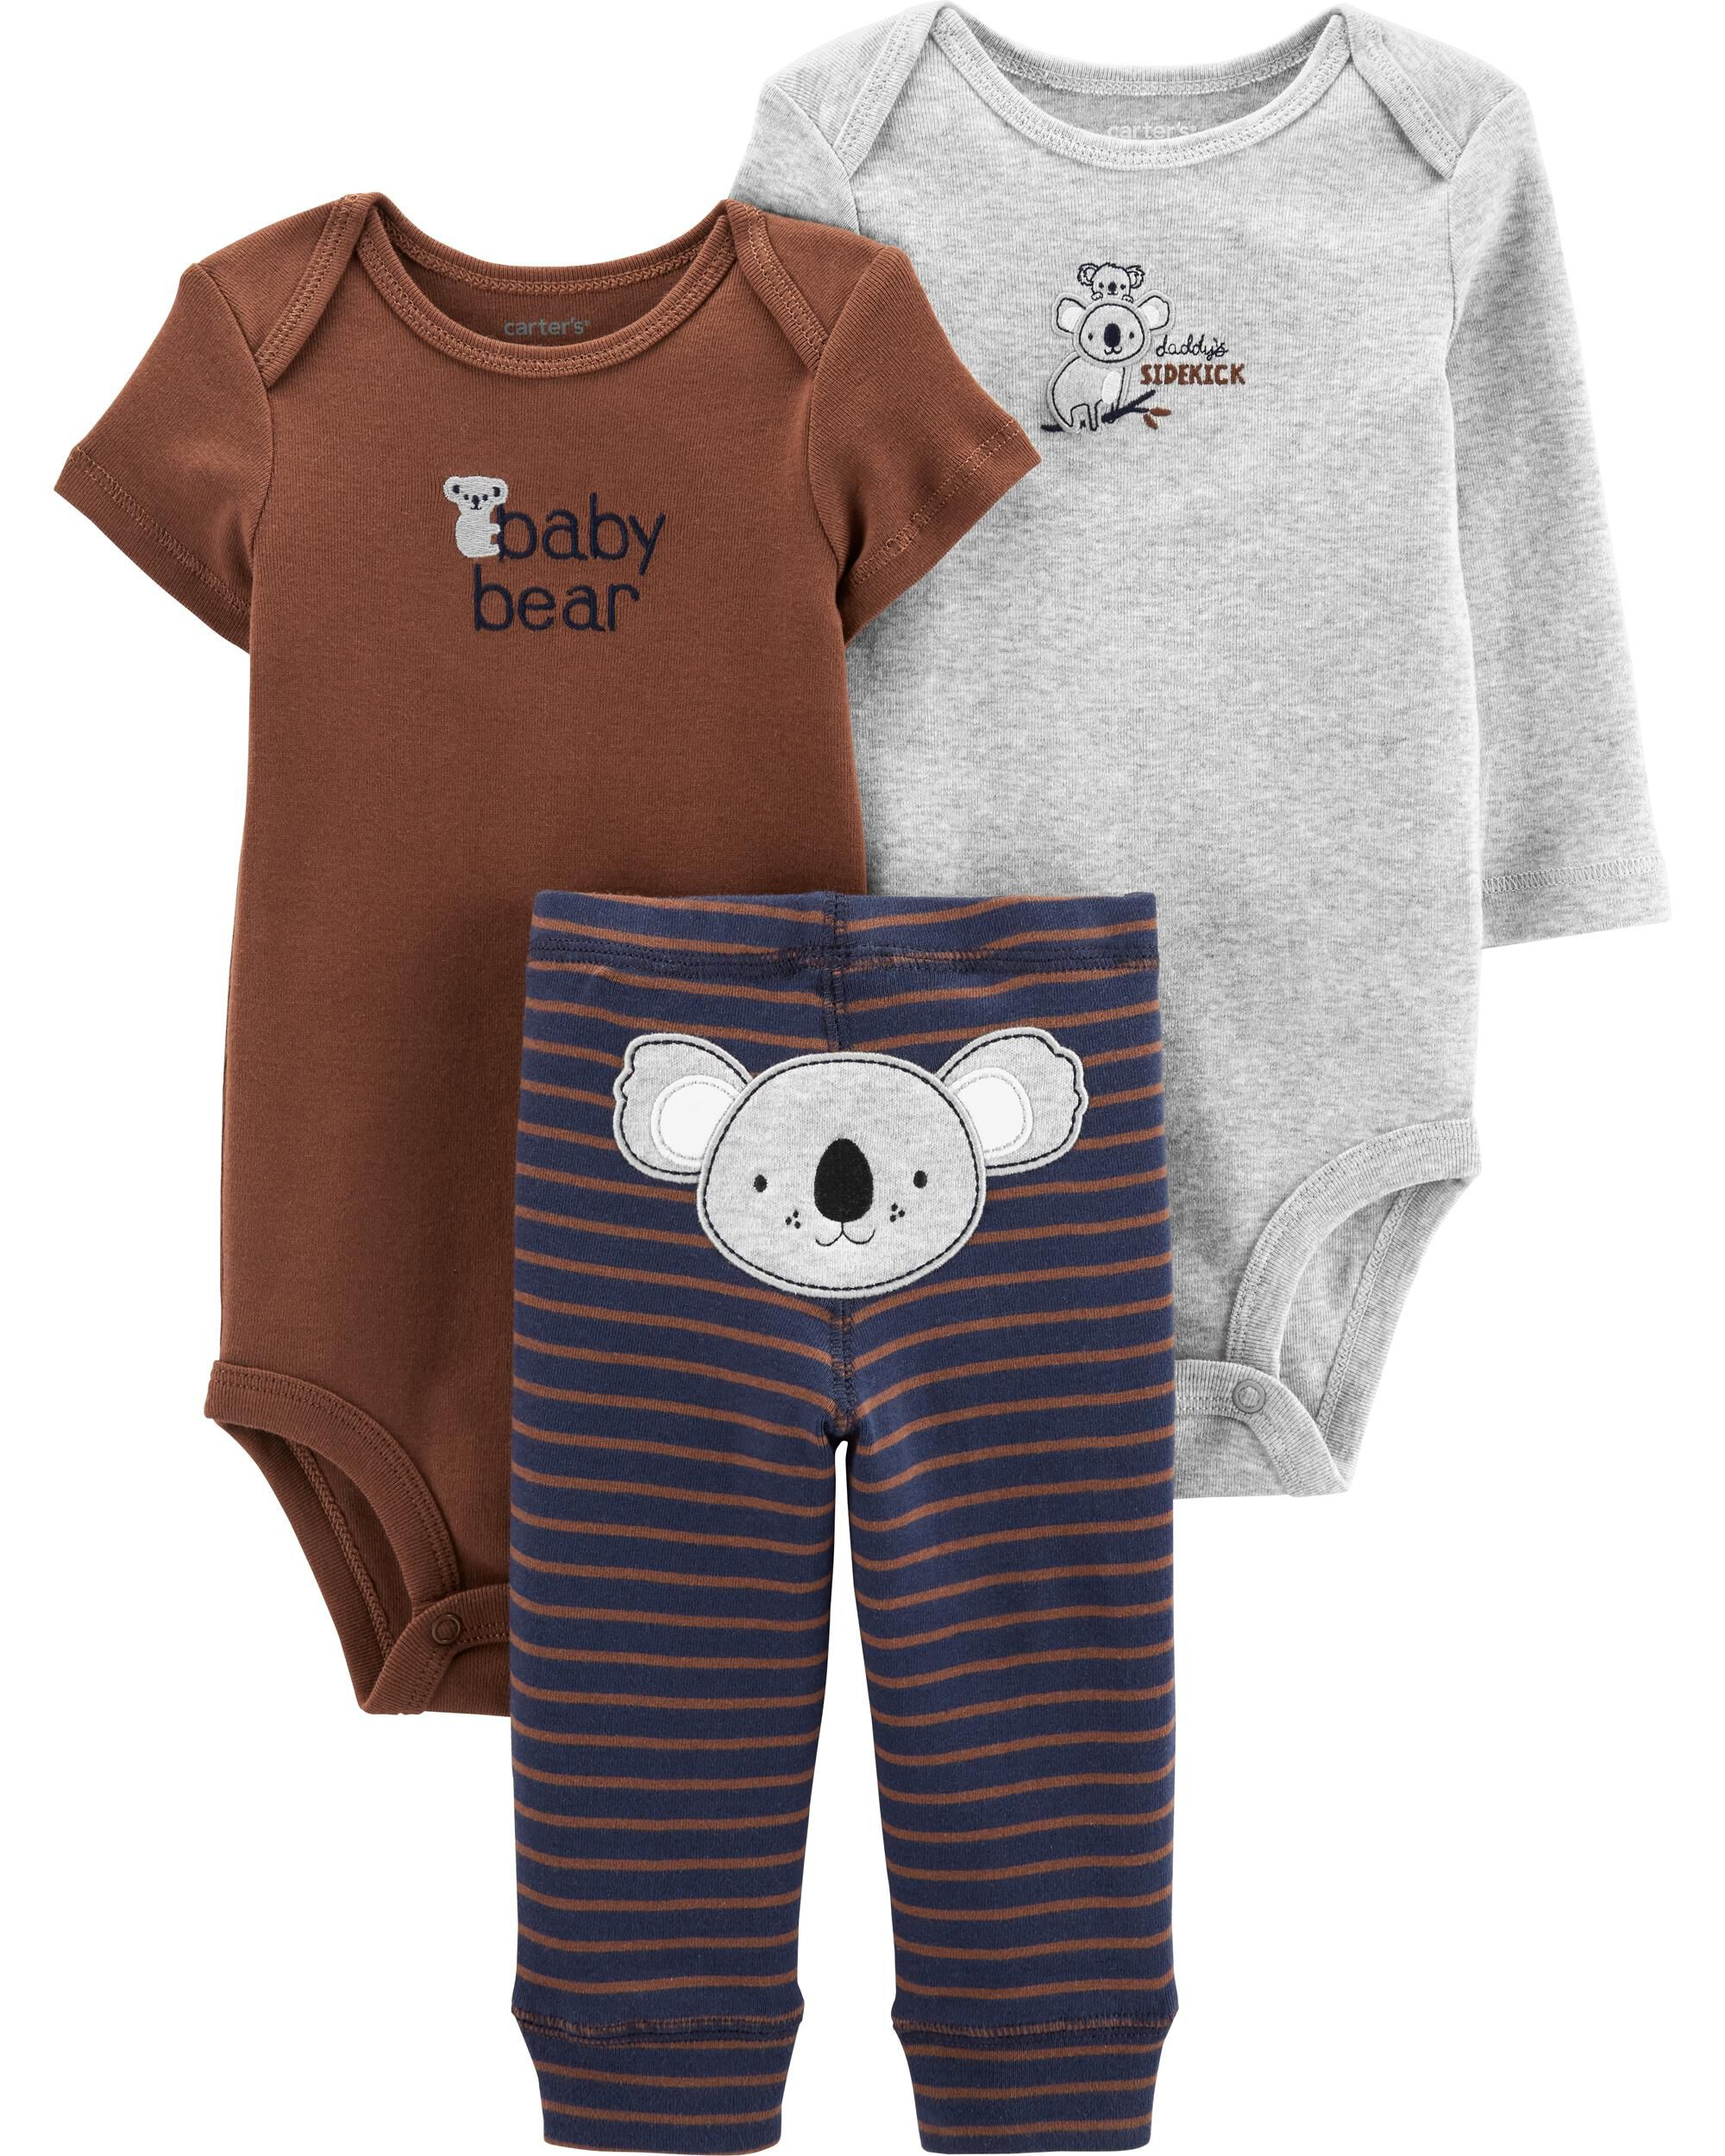 Sleep Suit Baby Boy All in One Outfit in a Nautical Style by Little Gent.